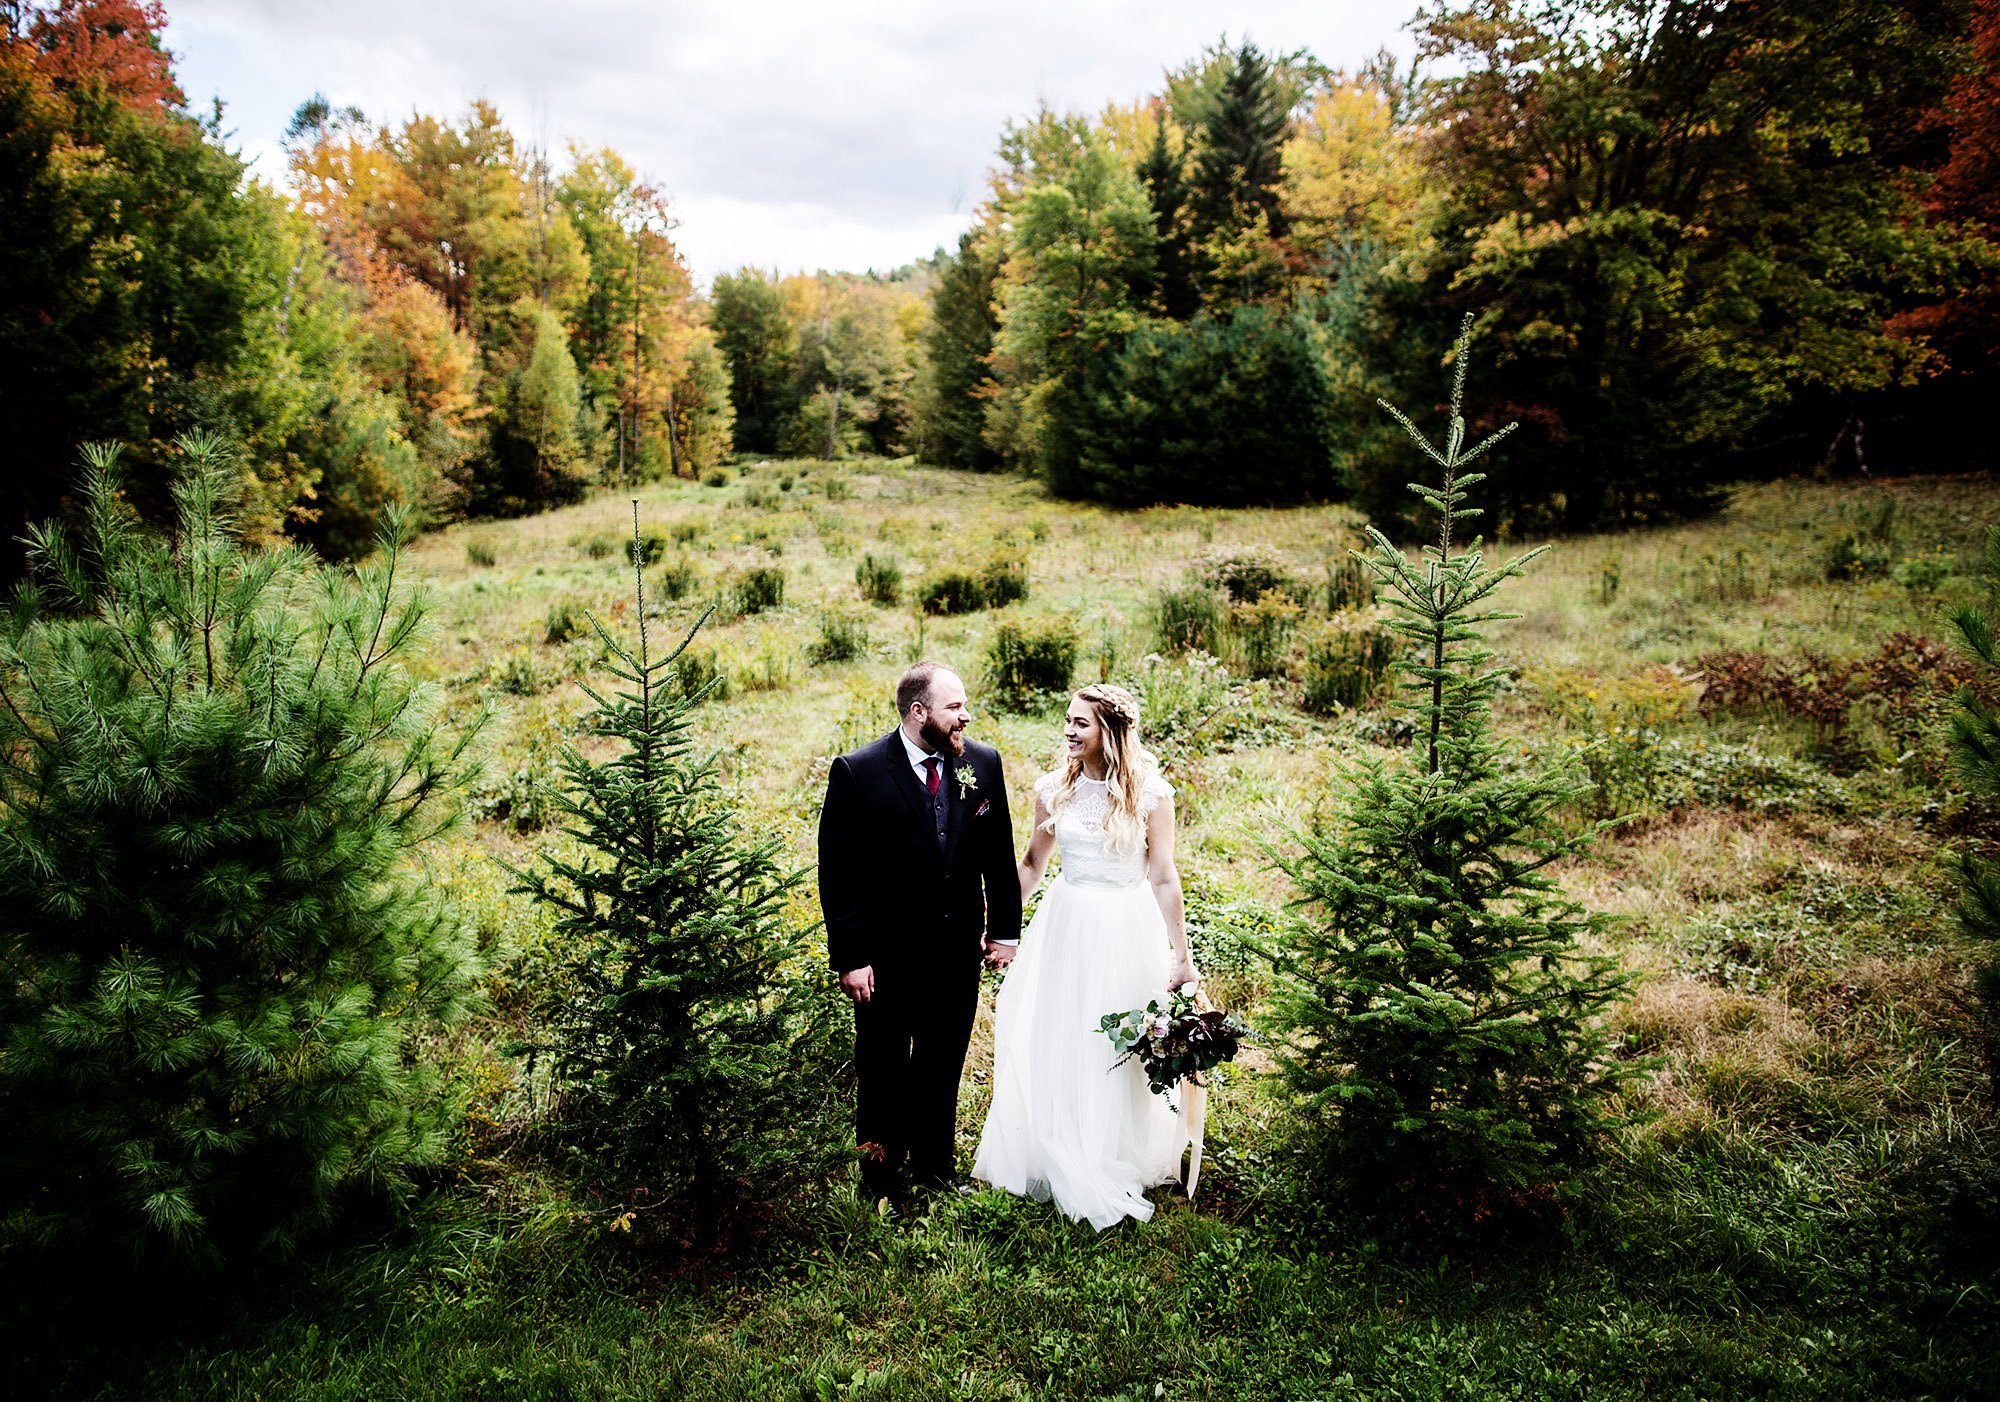 The bride and groom pose for a portrait during their Mad River Barn Wedding in Waitsfield, VT.